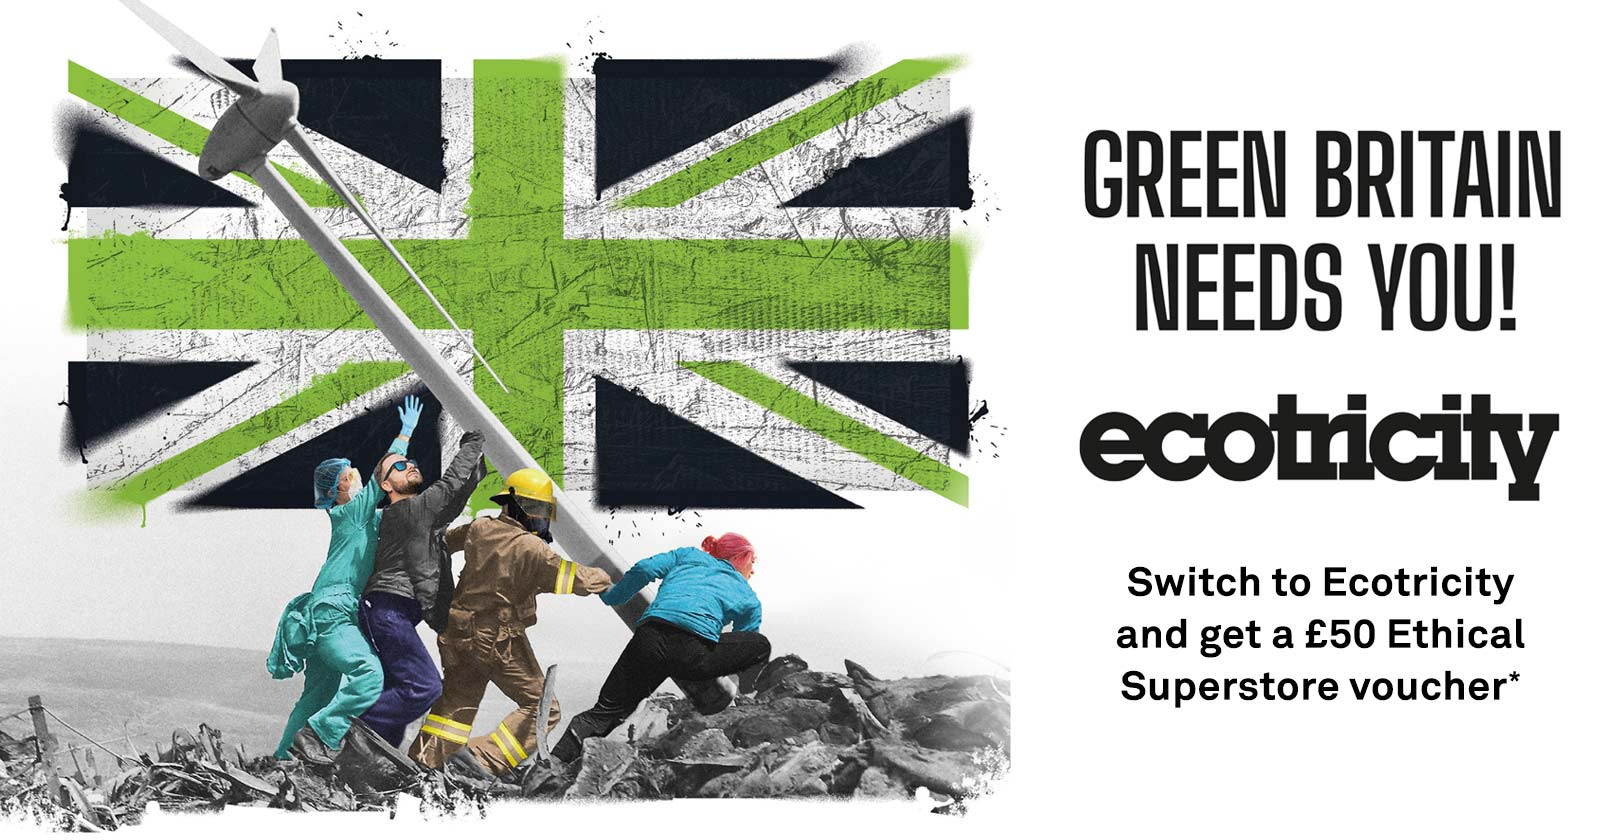 Green Britain needs you! Switch to Ecotricity and get a £50 voucher*